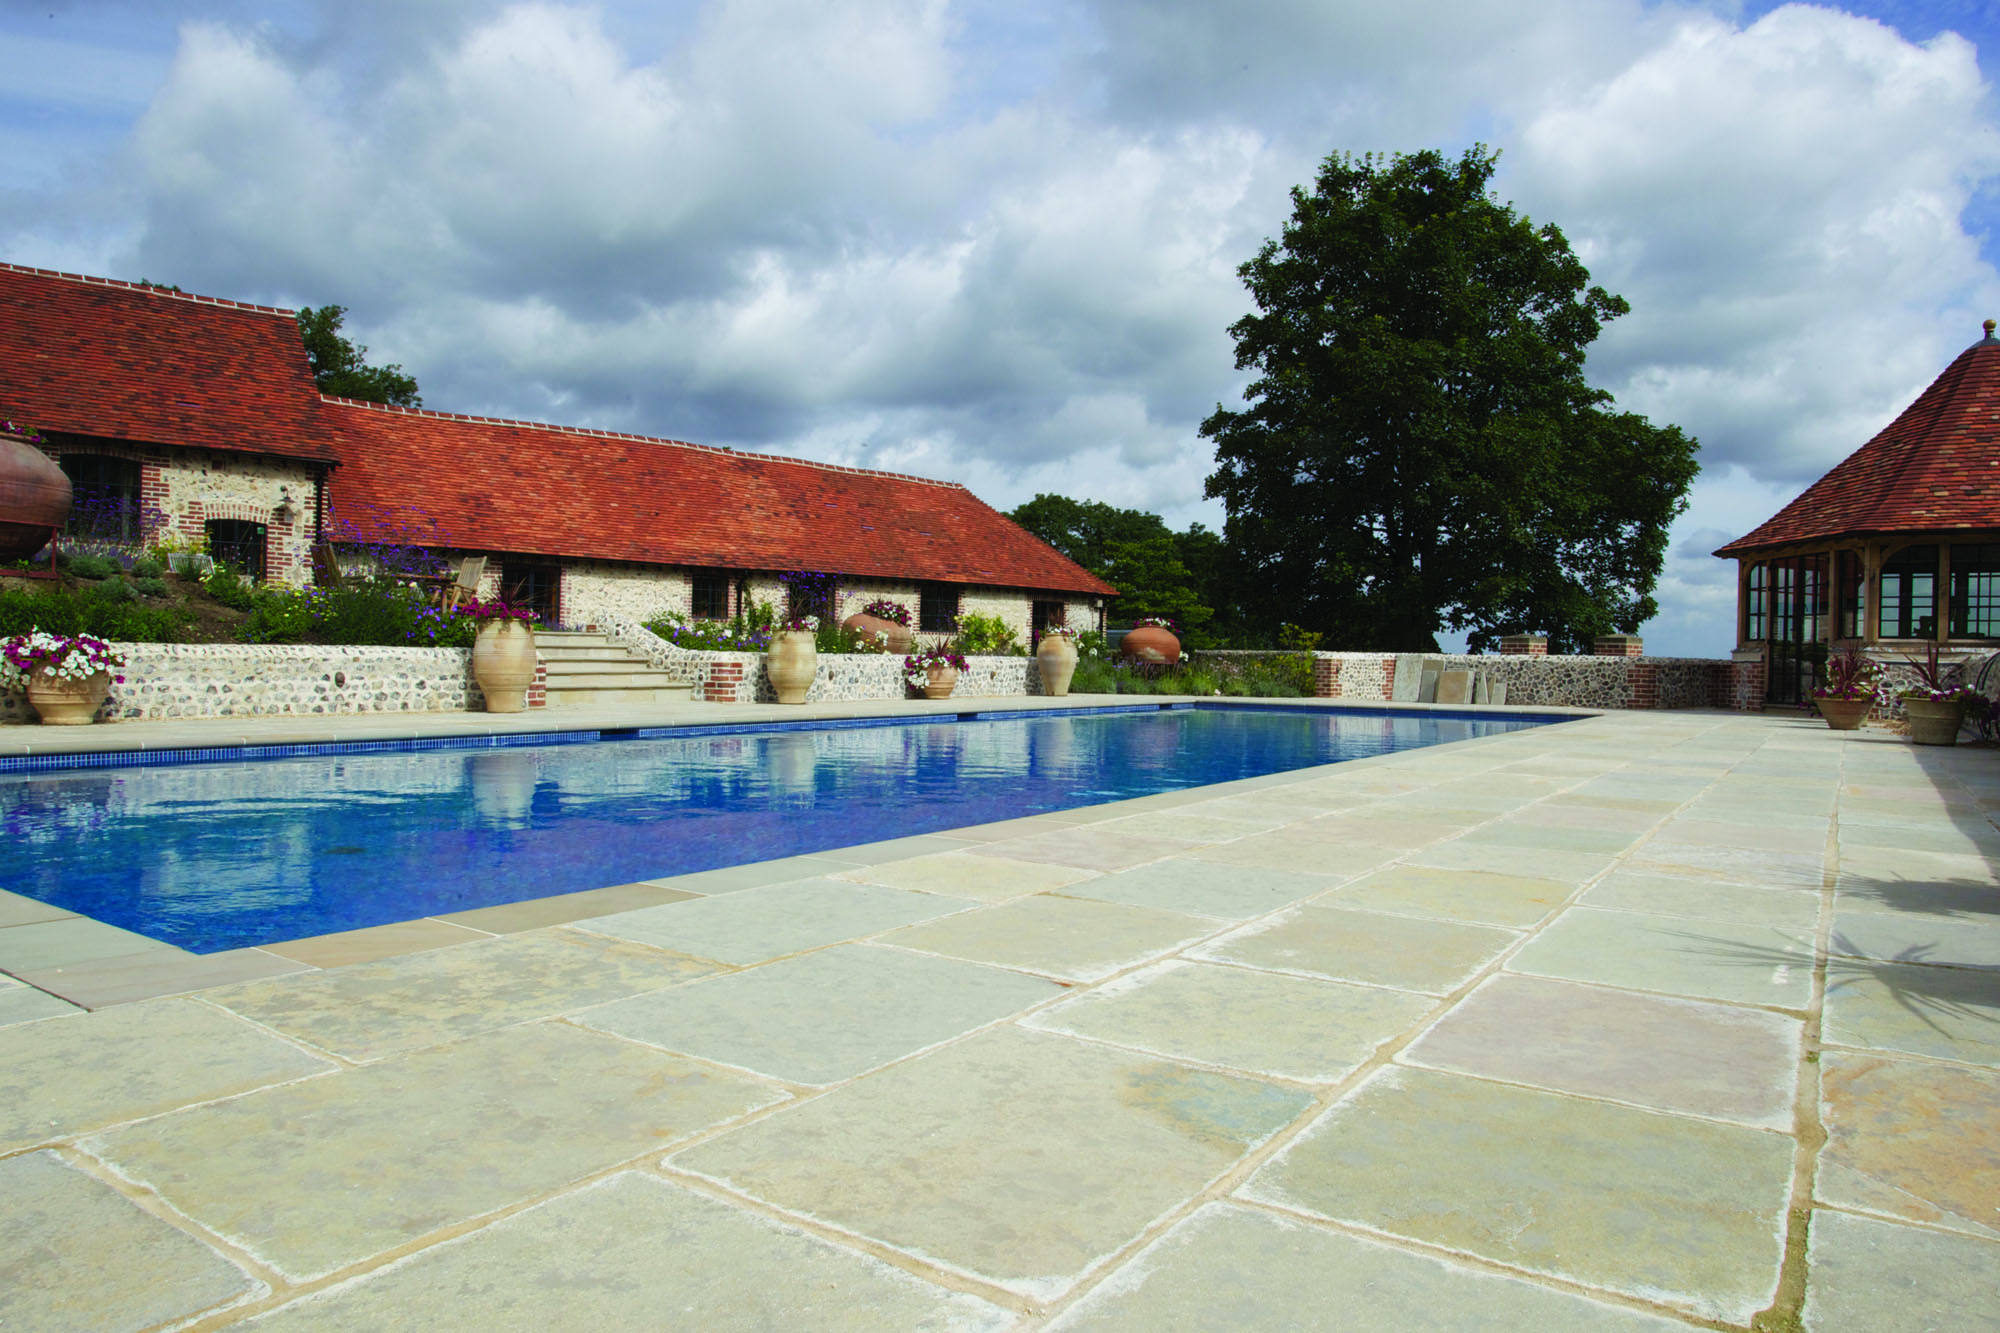 Choosing an external stone floor